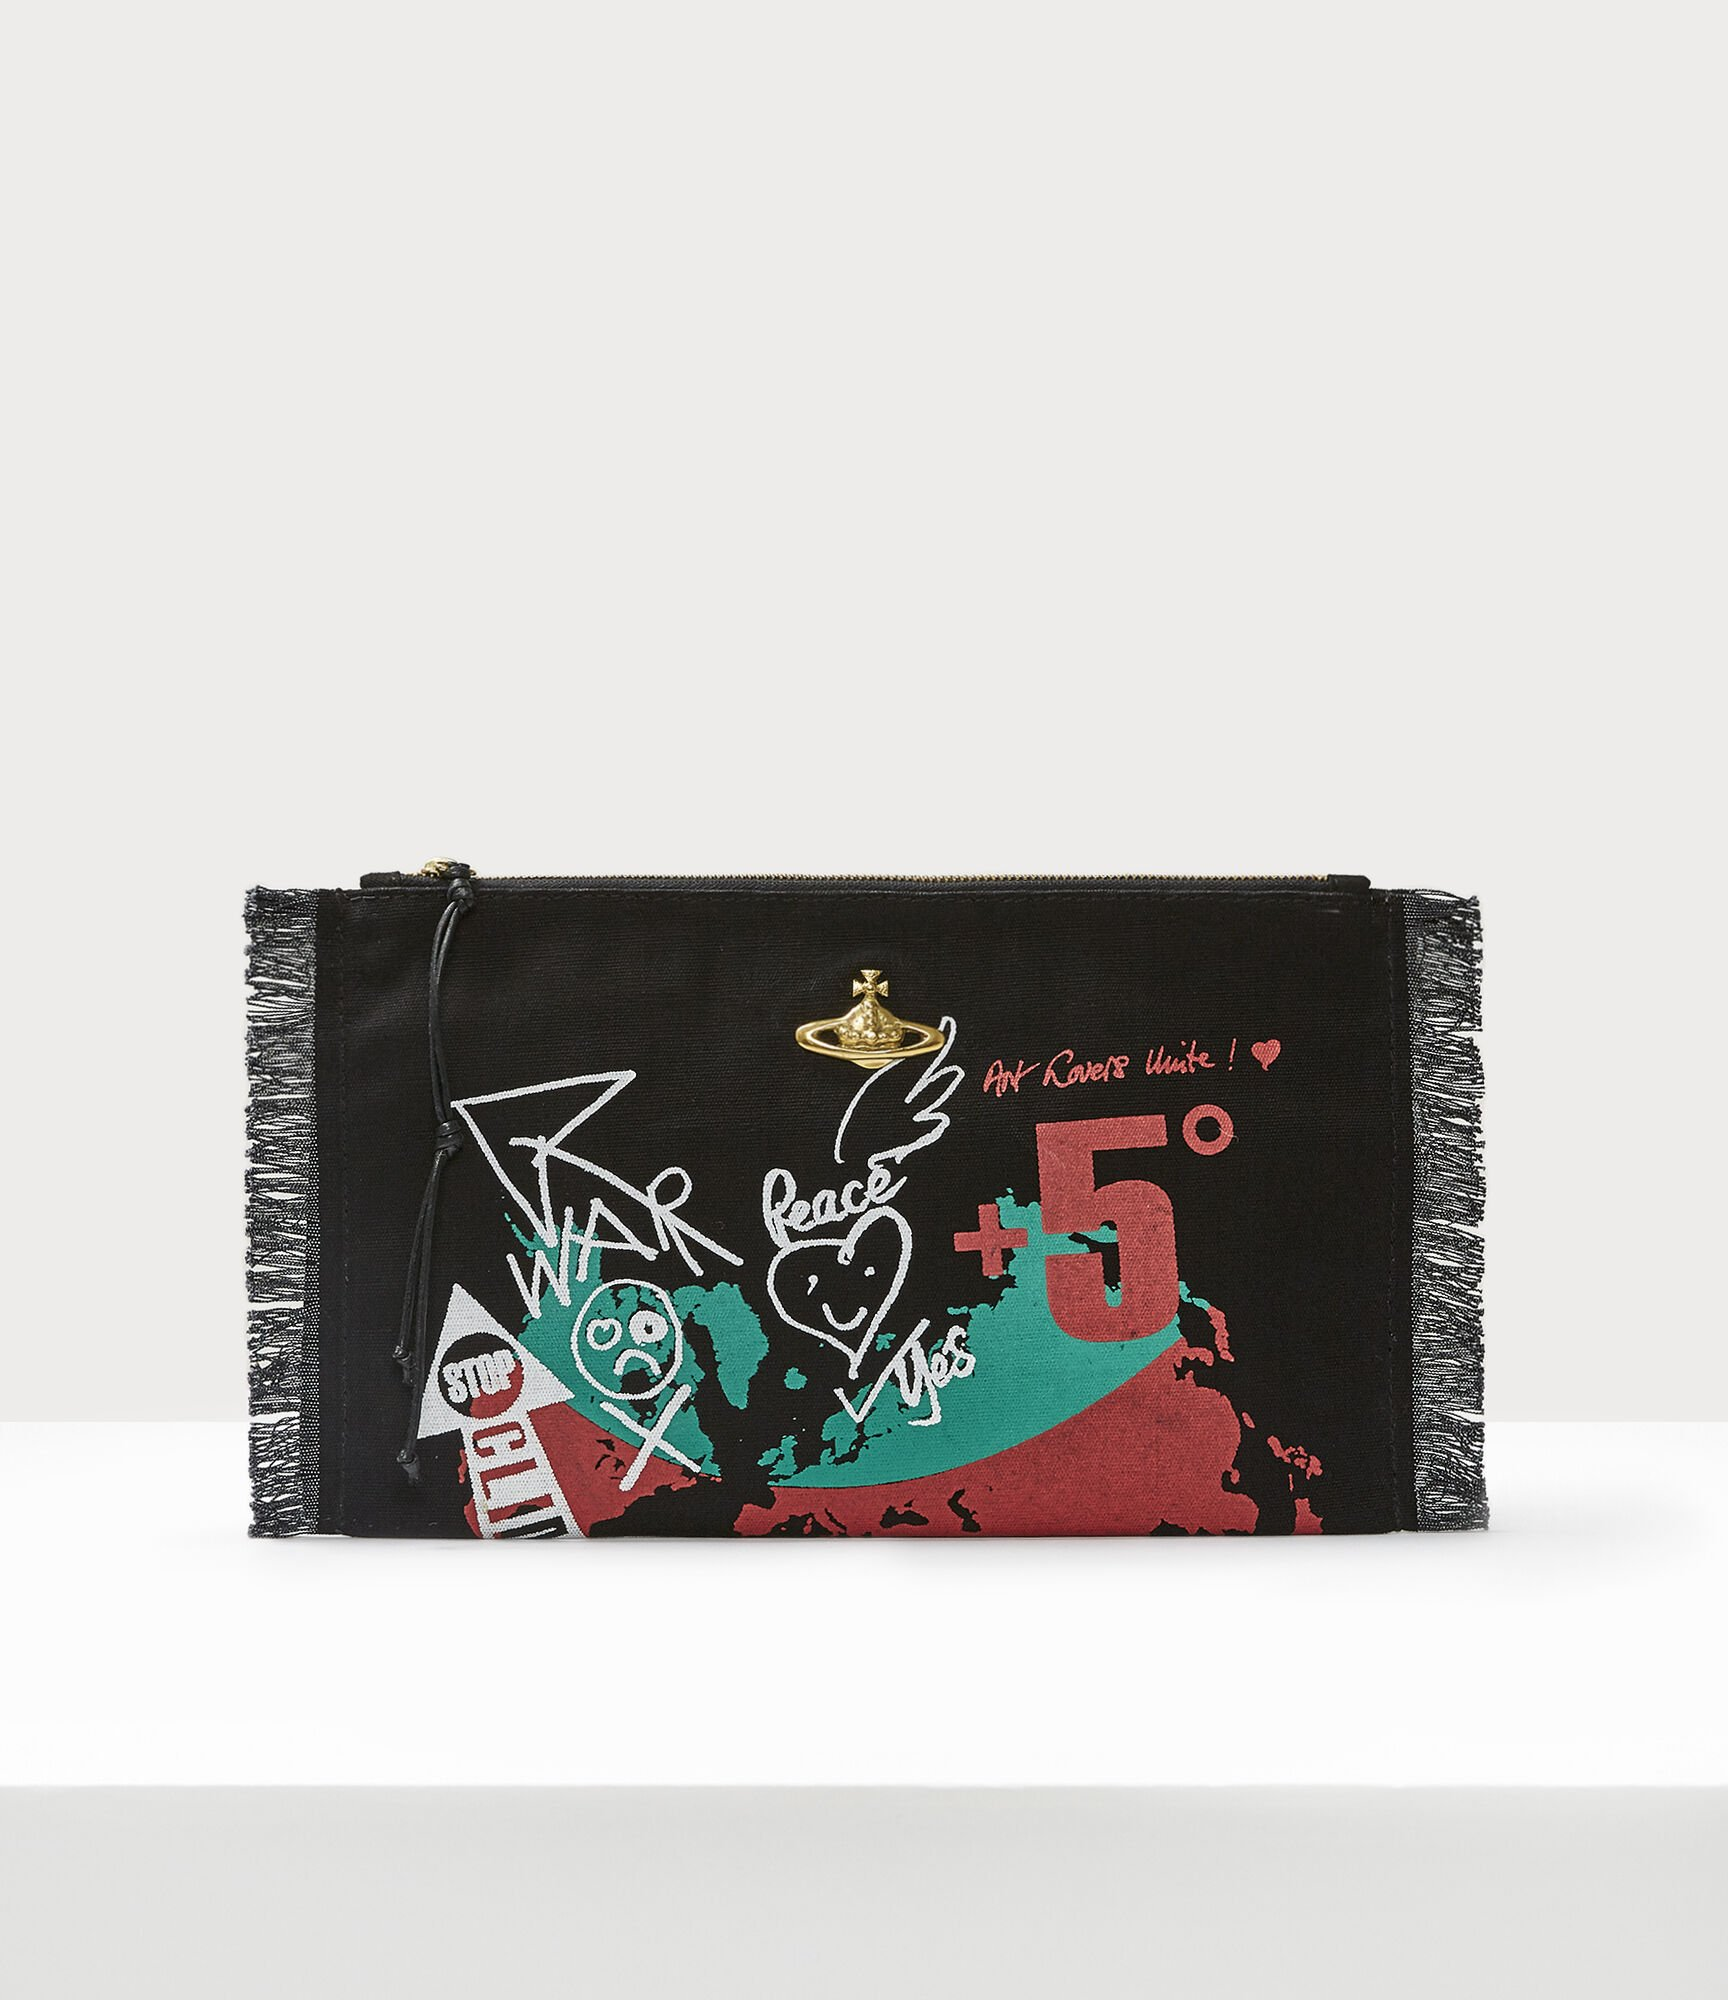 Vivienne Westwood WORLD MAP POUCH BLACK